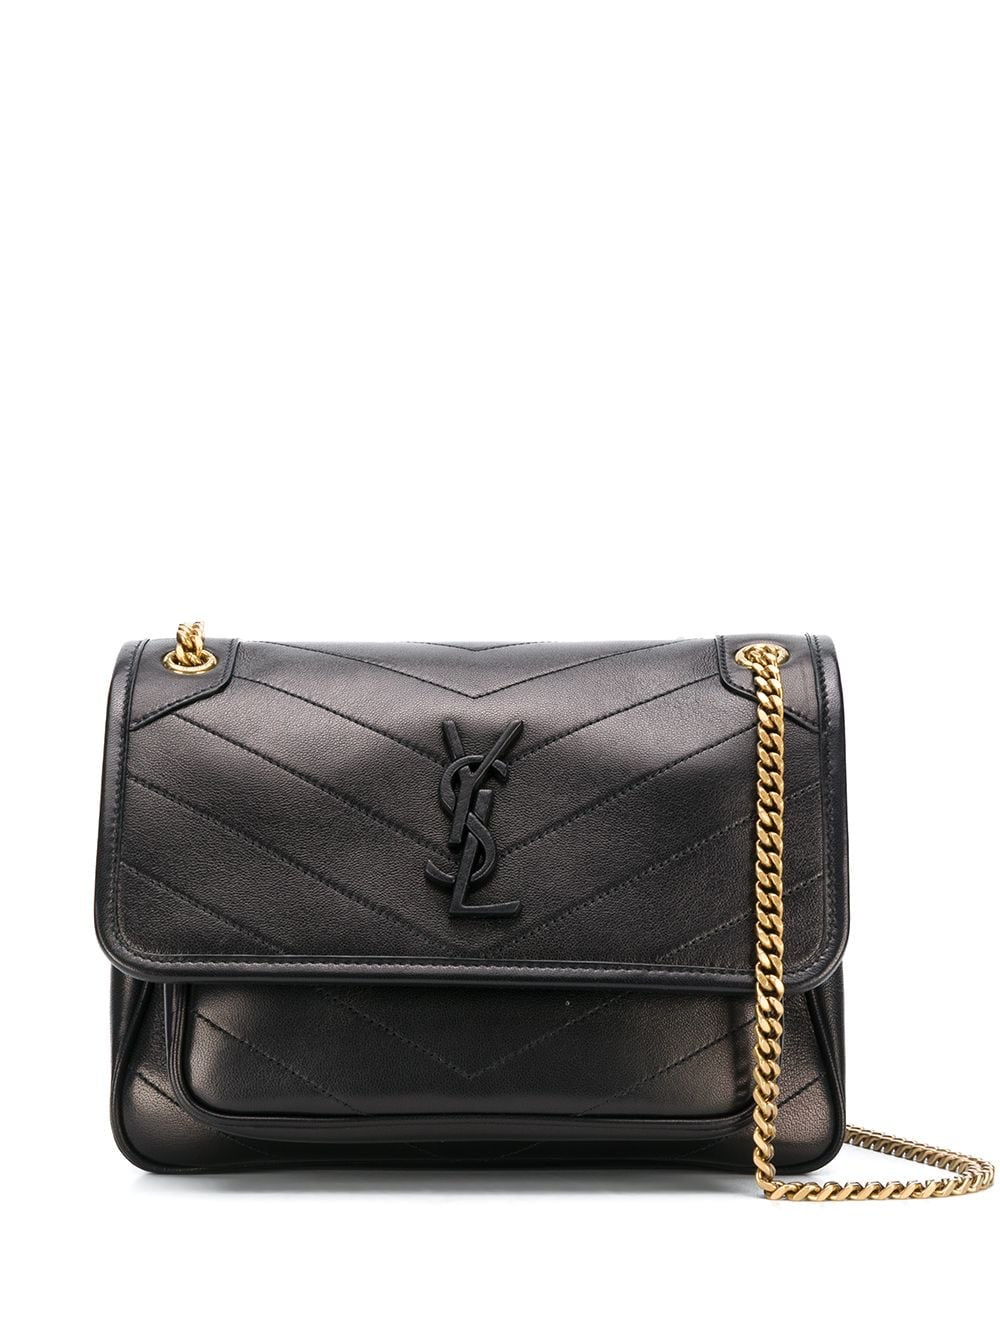 Saint Laurent Medium Niki Bag